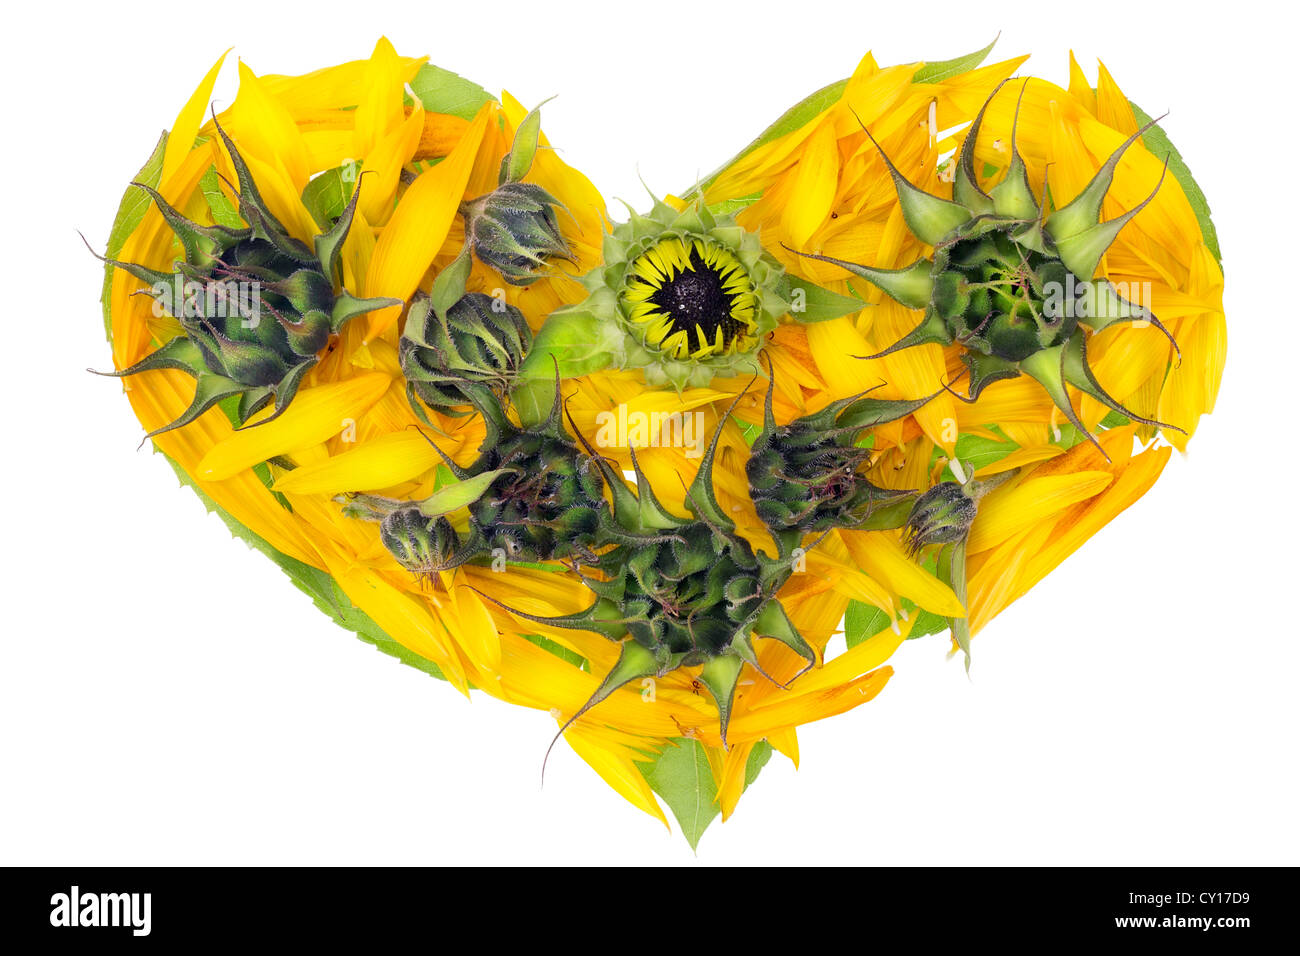 Abstract sunflowers isolated hot yellow summer heart concept - Stock Image